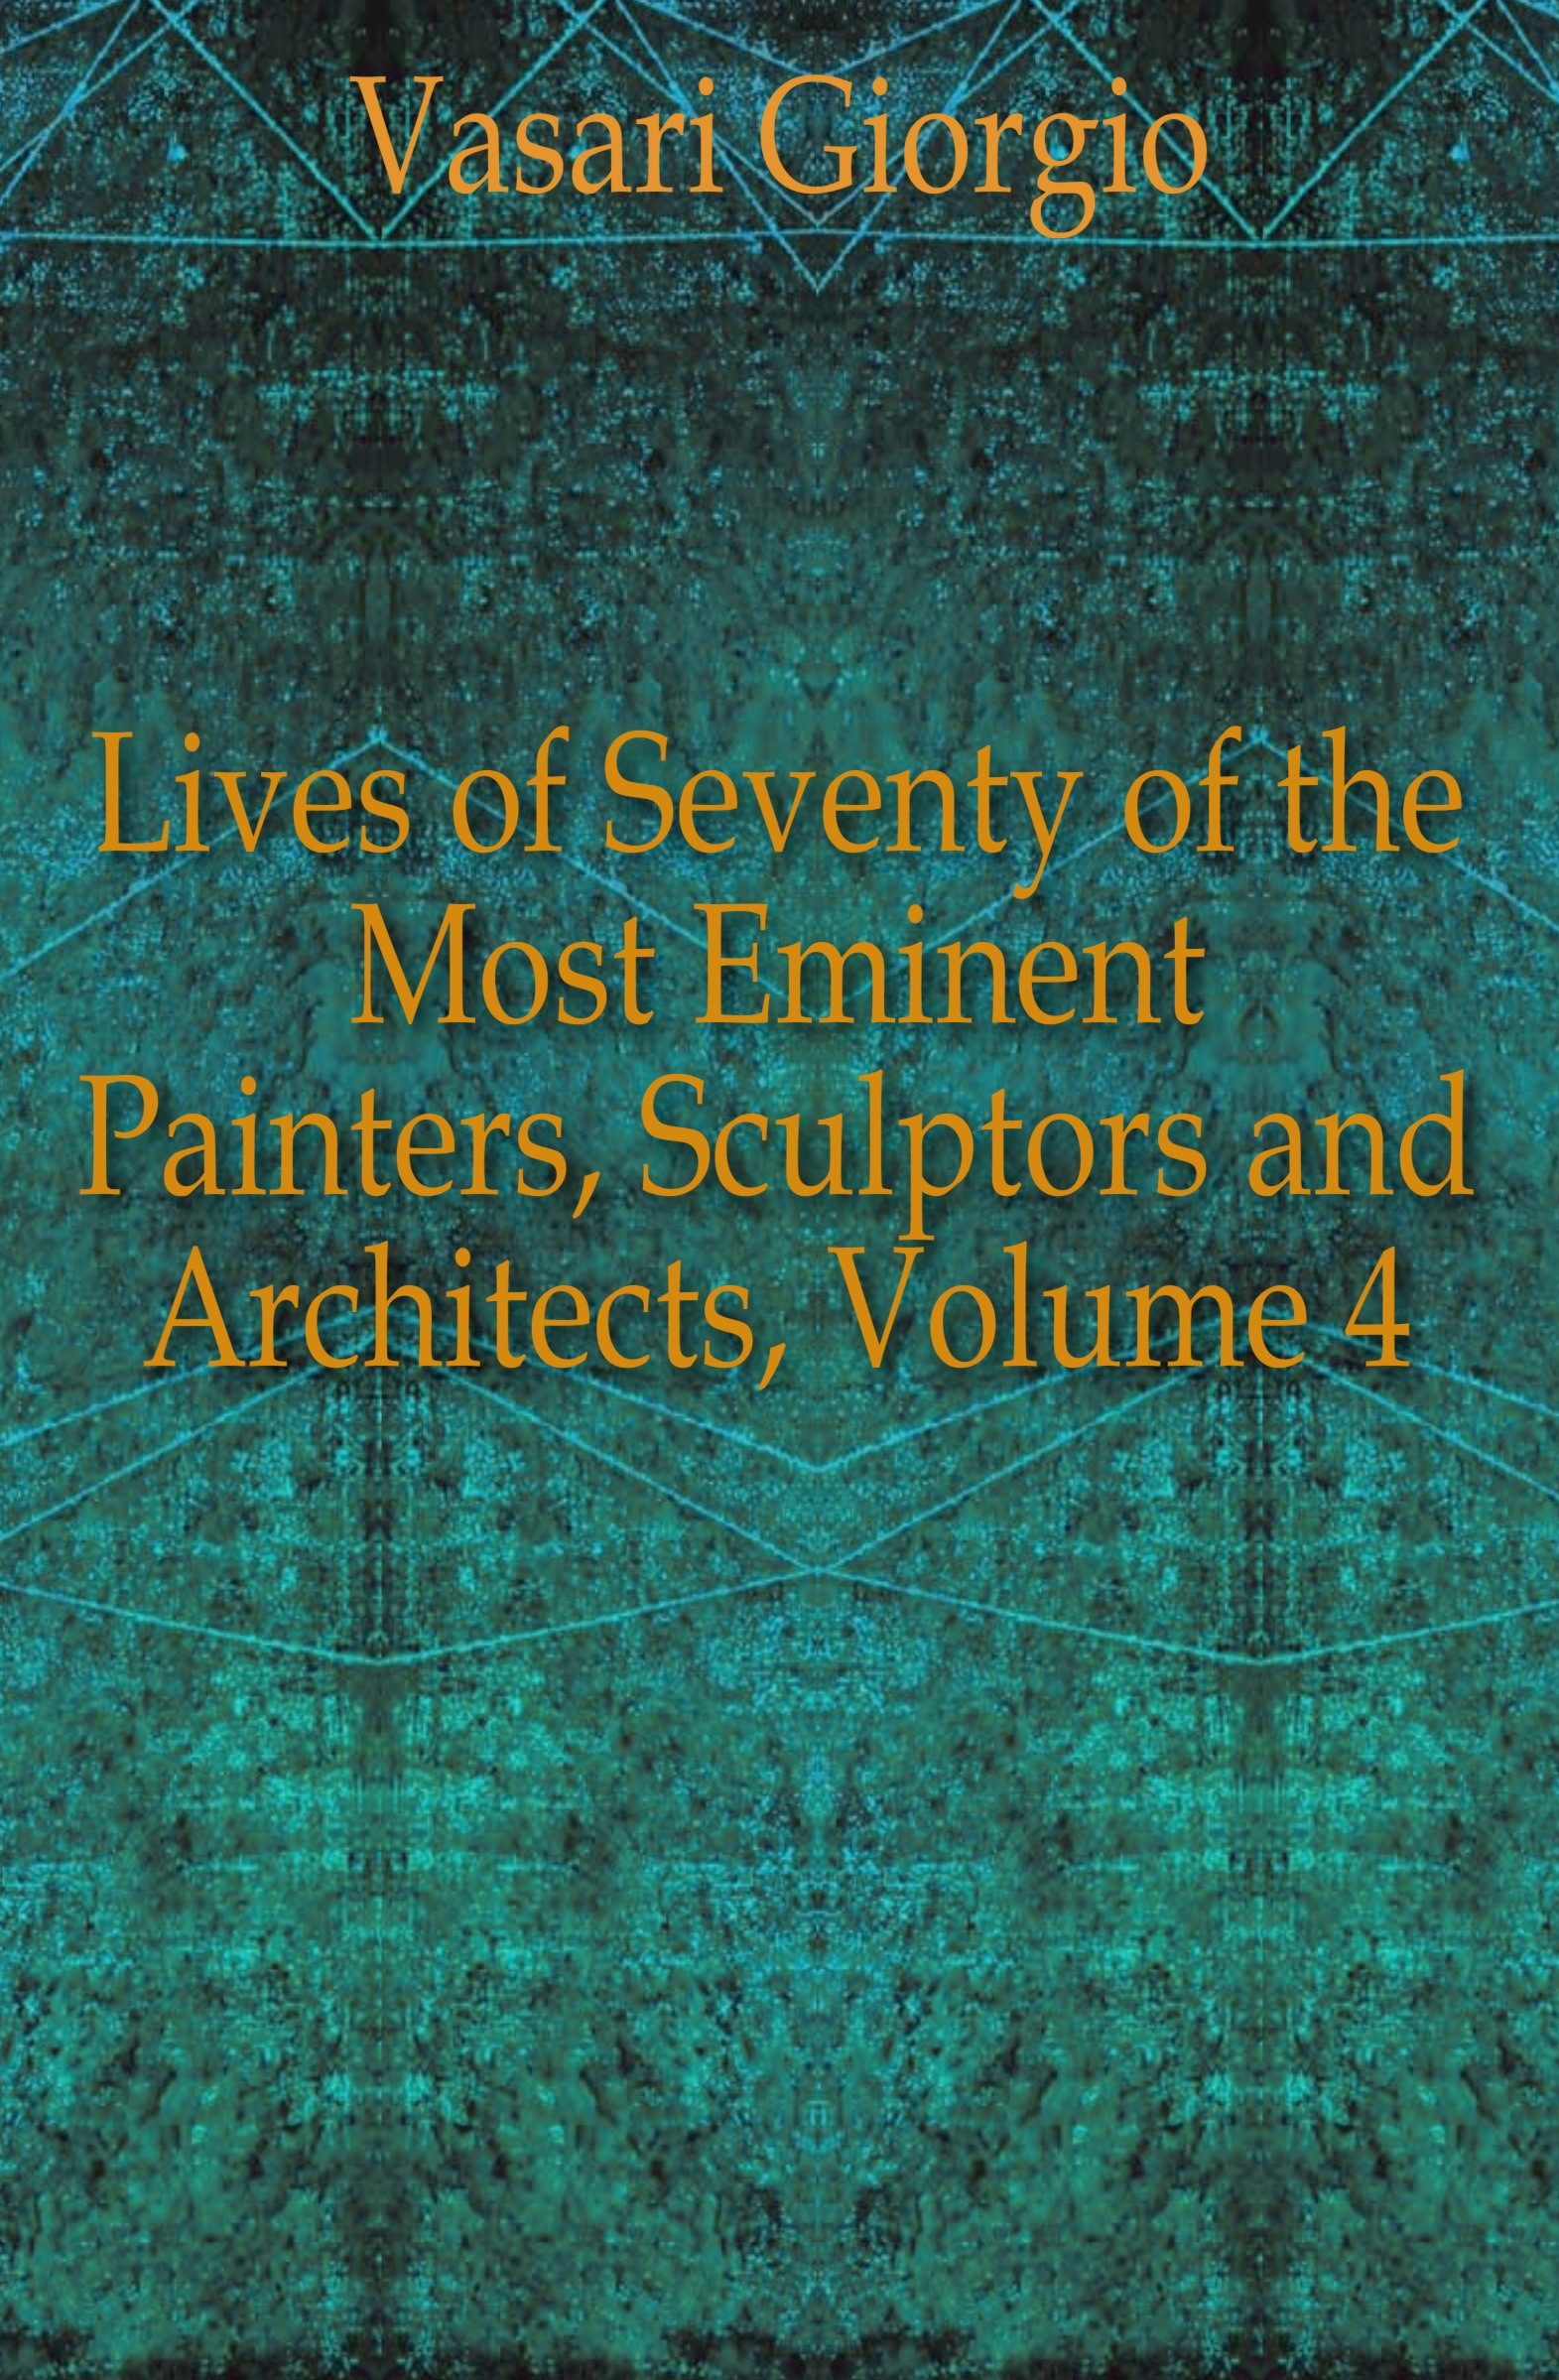 Vasari Giorgio Lives of Seventy of the Most Eminent Painters, Sculptors and Architects, Volume 4